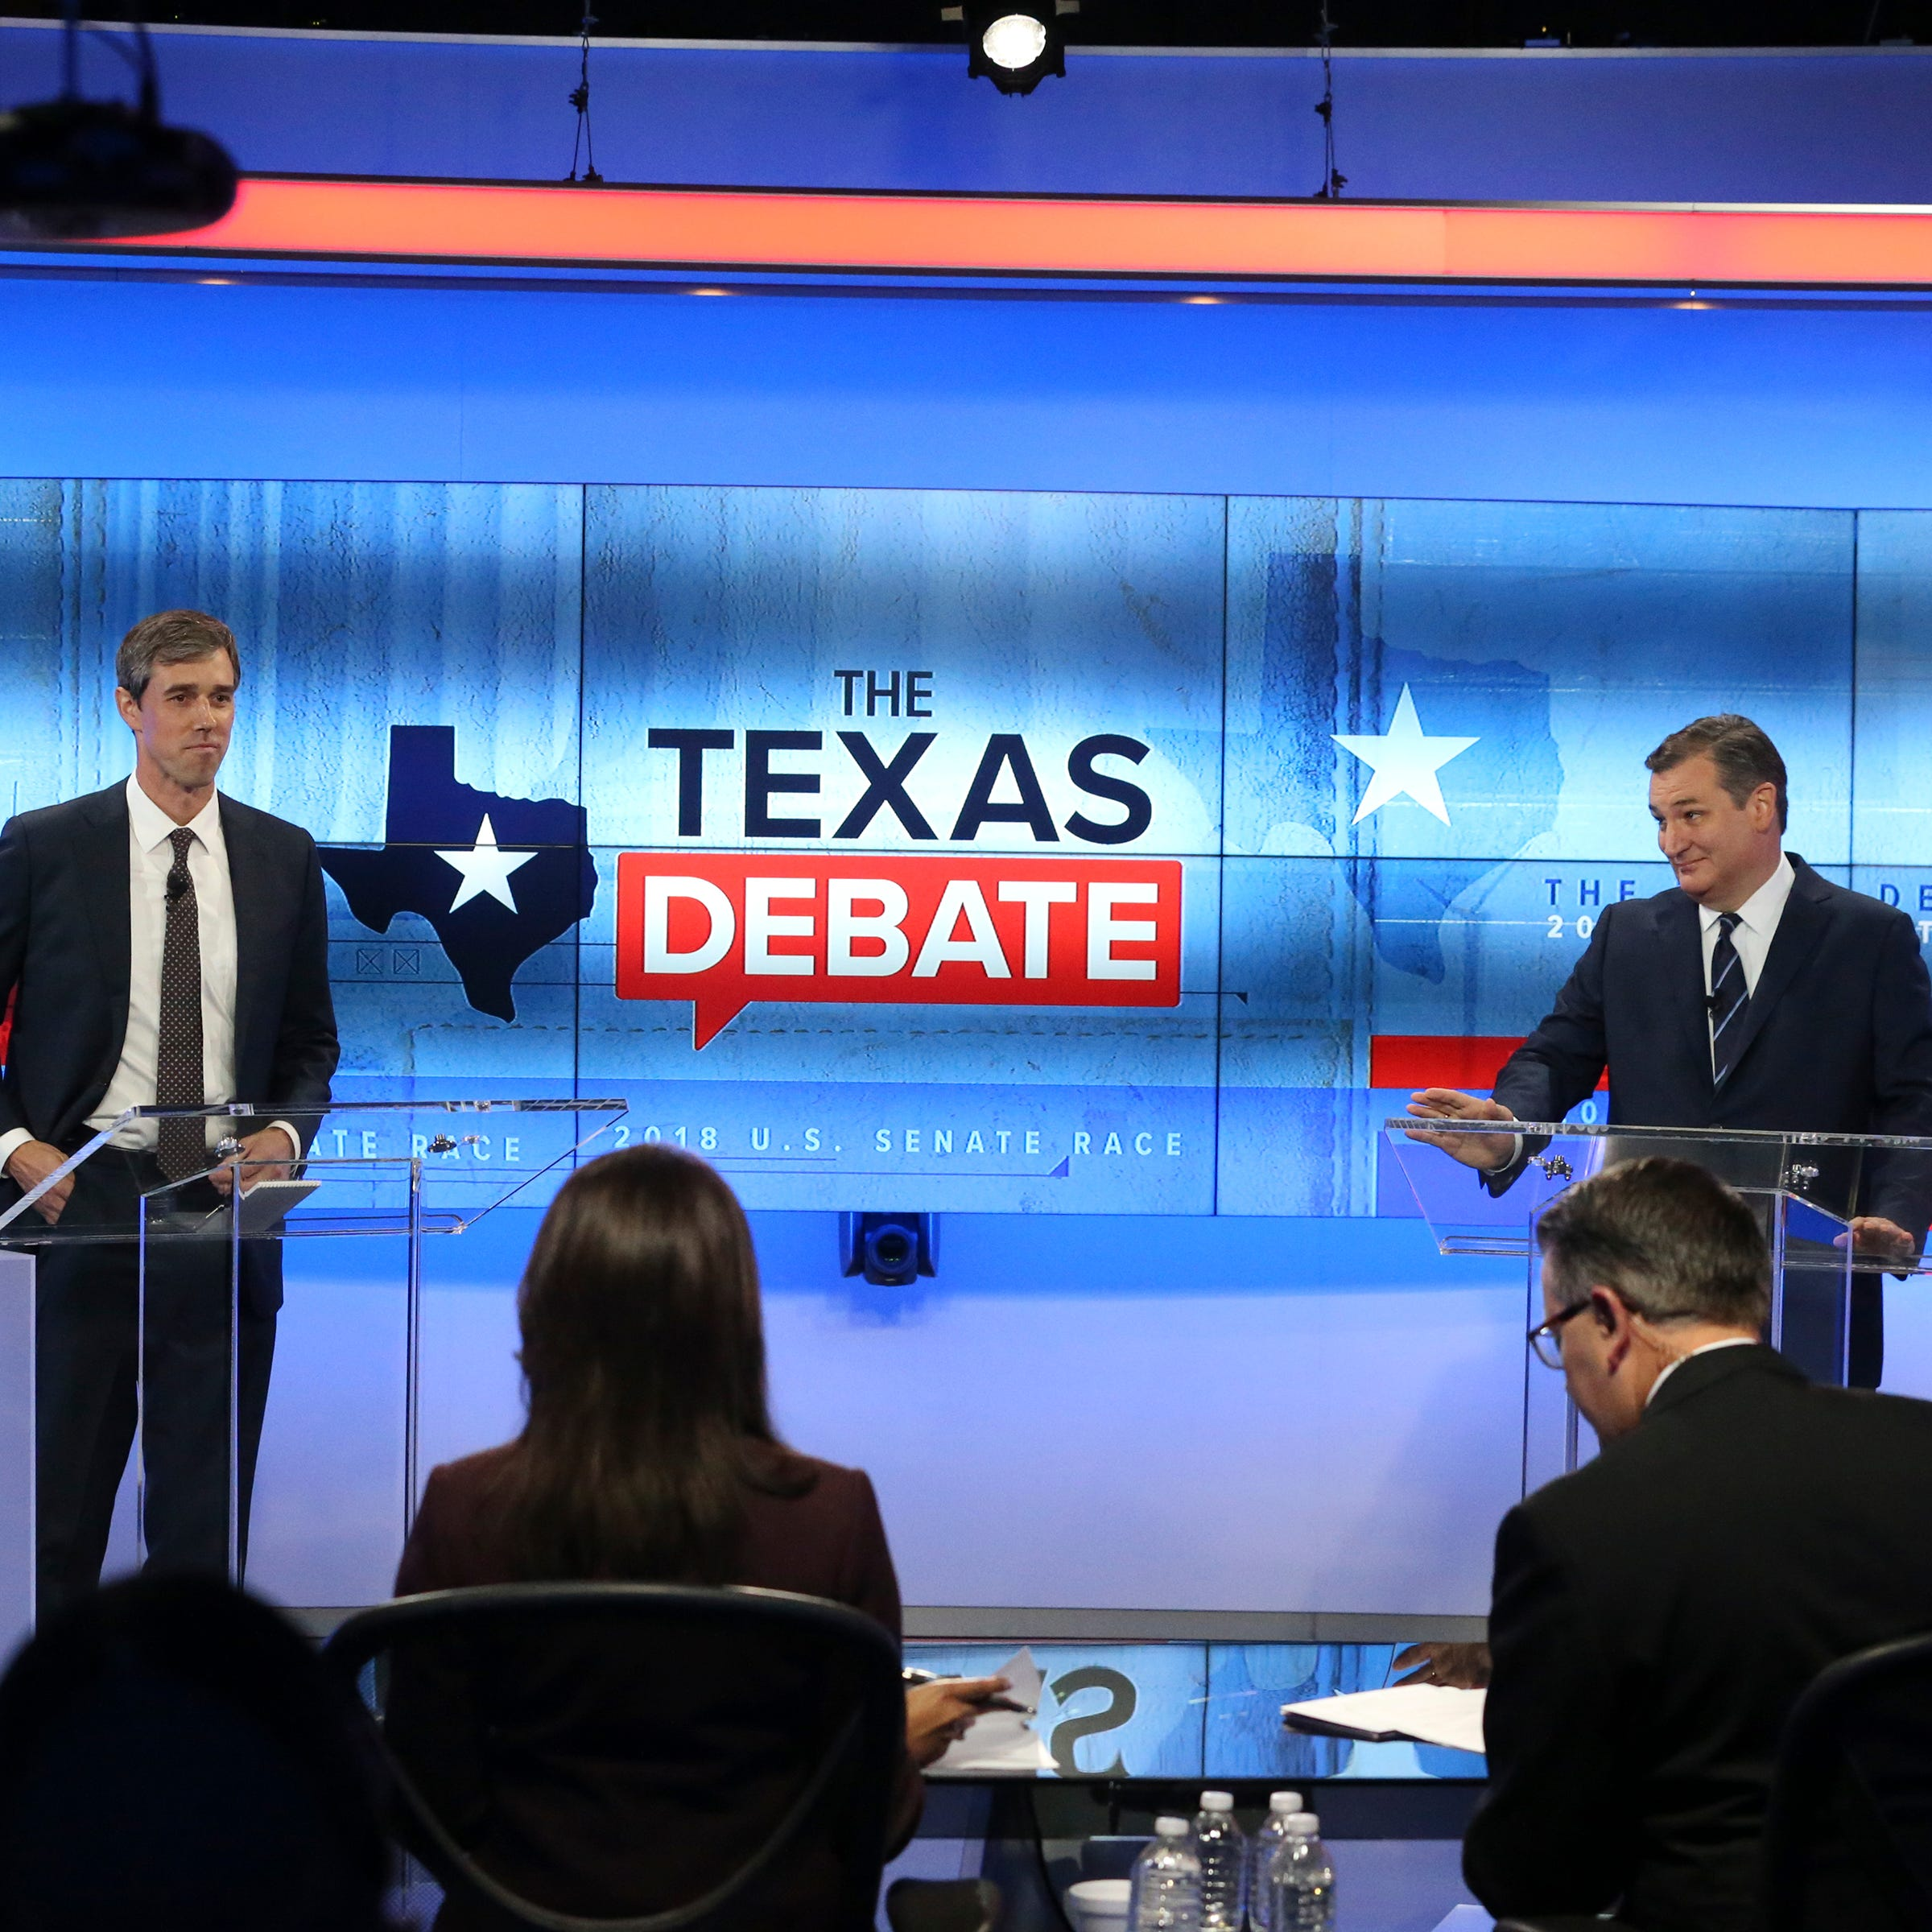 Beto-Cruz Debate: What Ellen DeGeneres and others are saying online about the debate